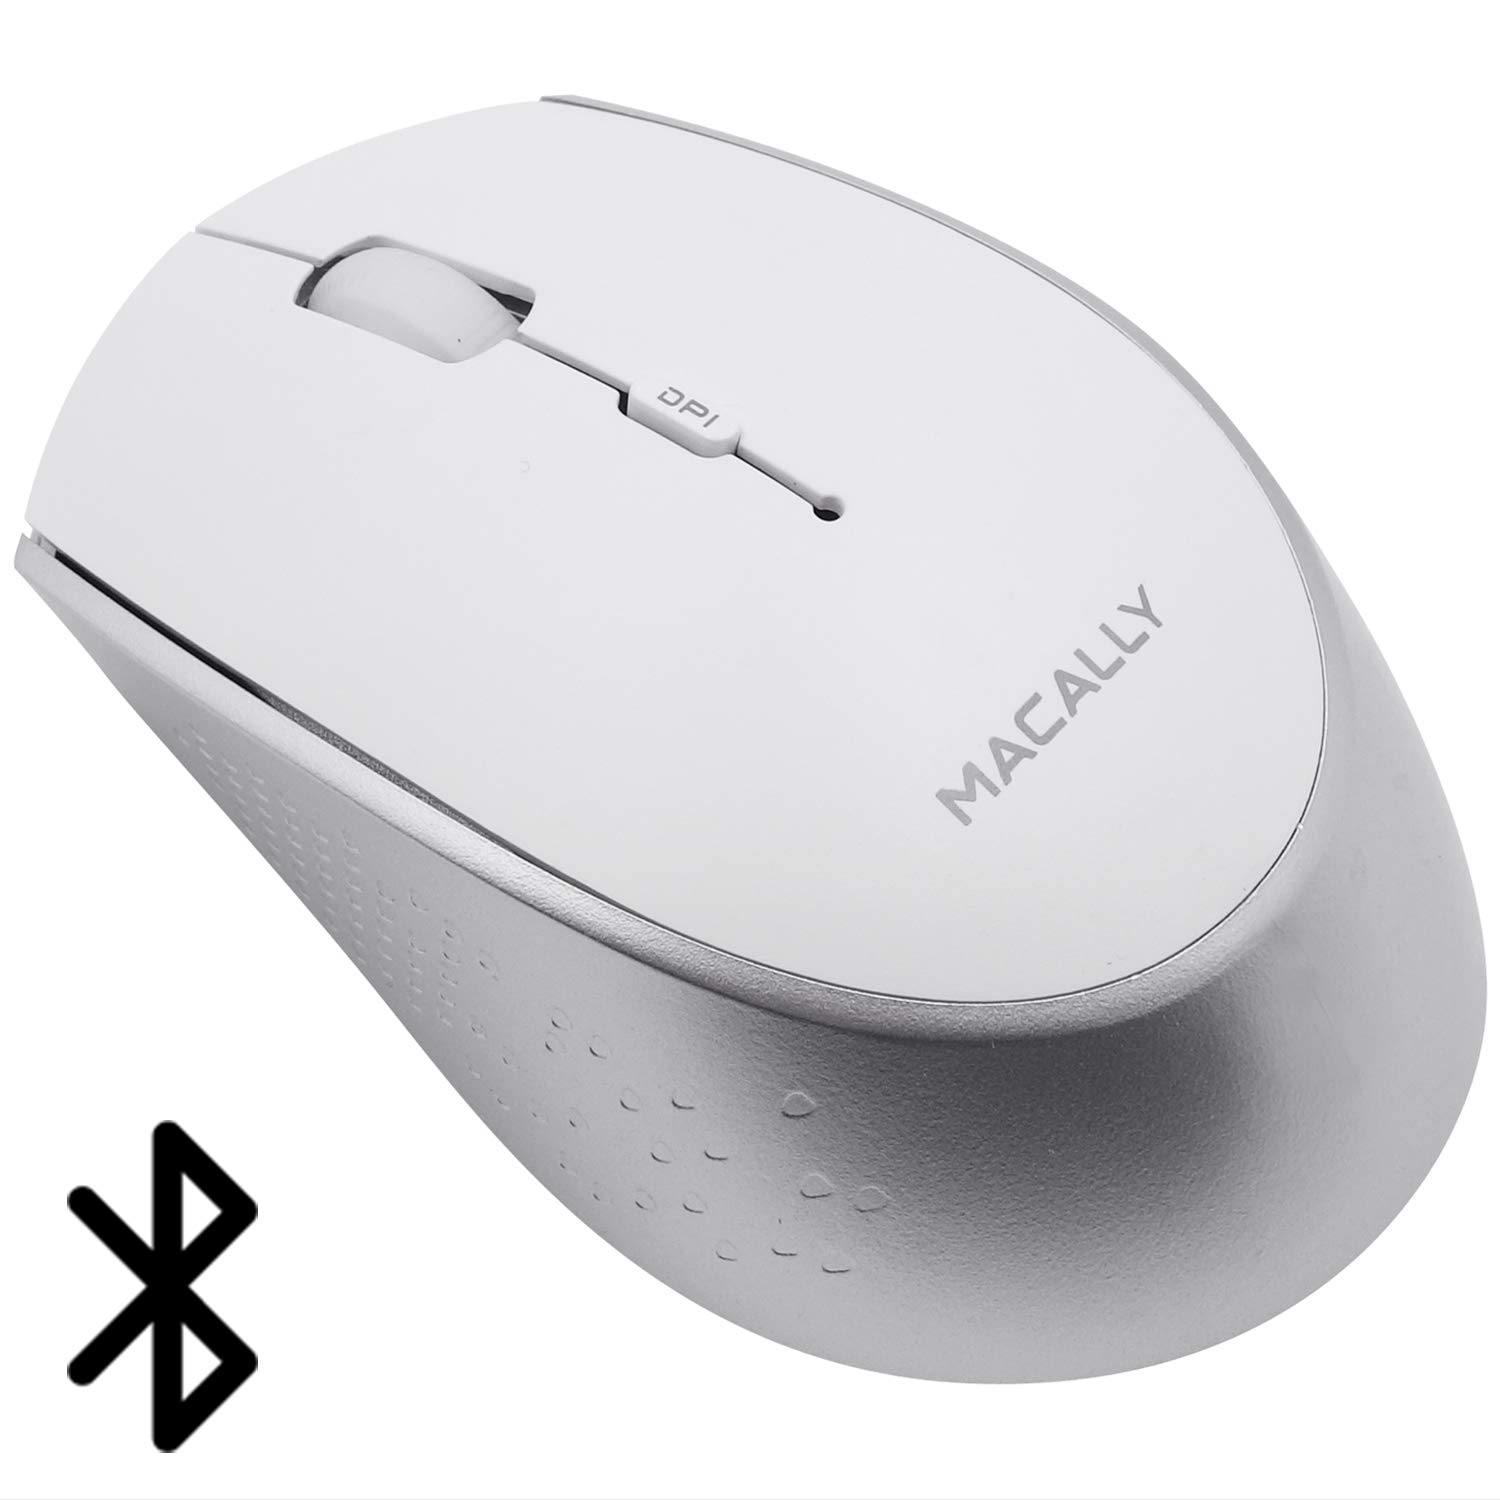 pairing bluetooth mouse with macbook pro